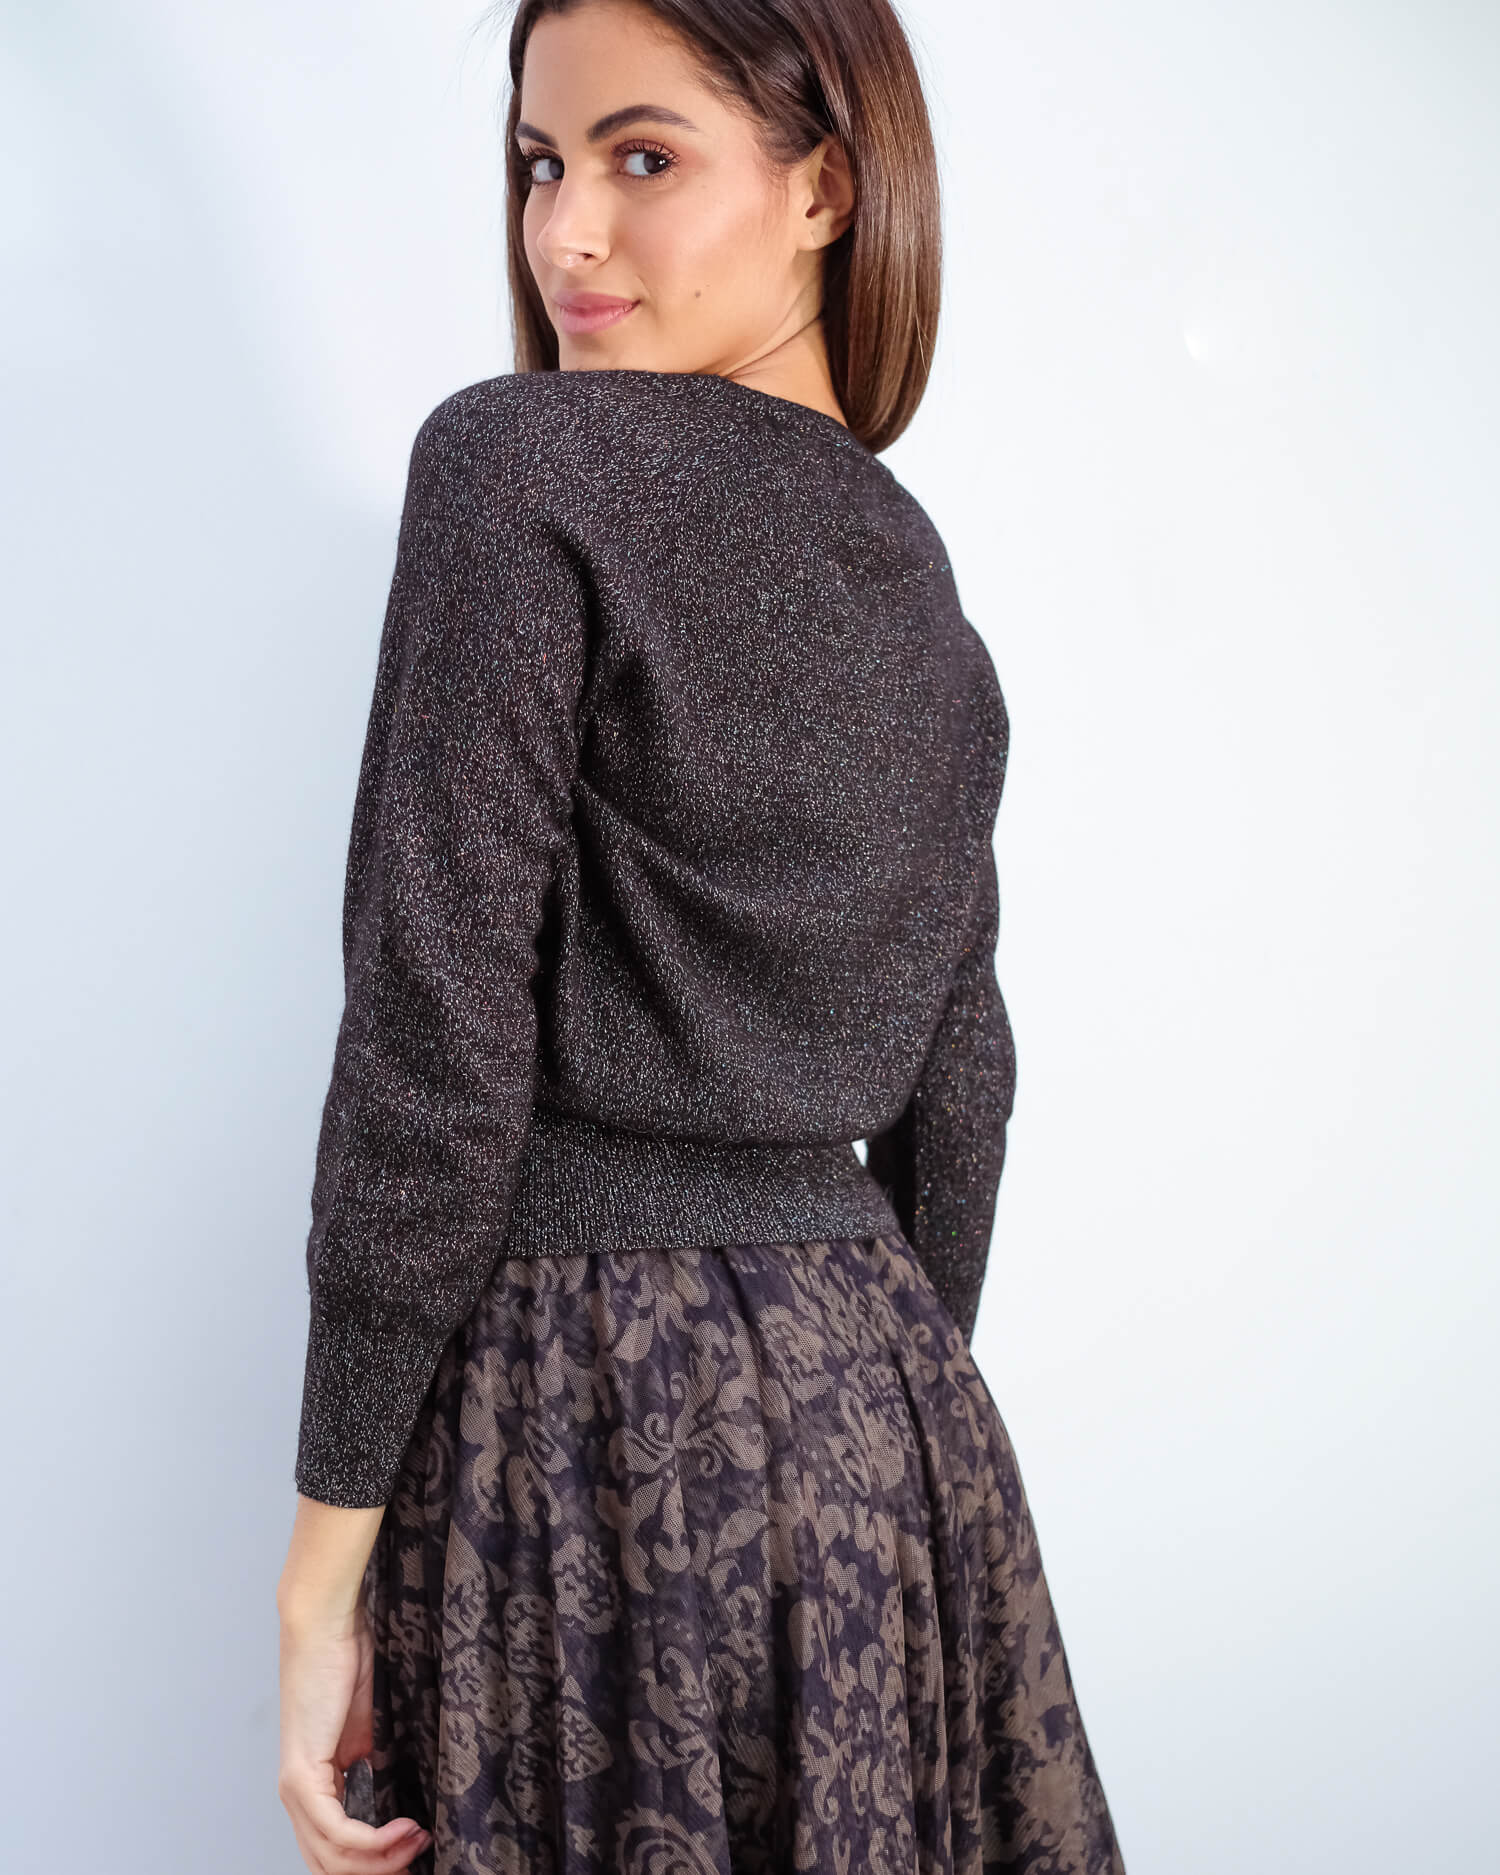 JU Lurex cardigan in black